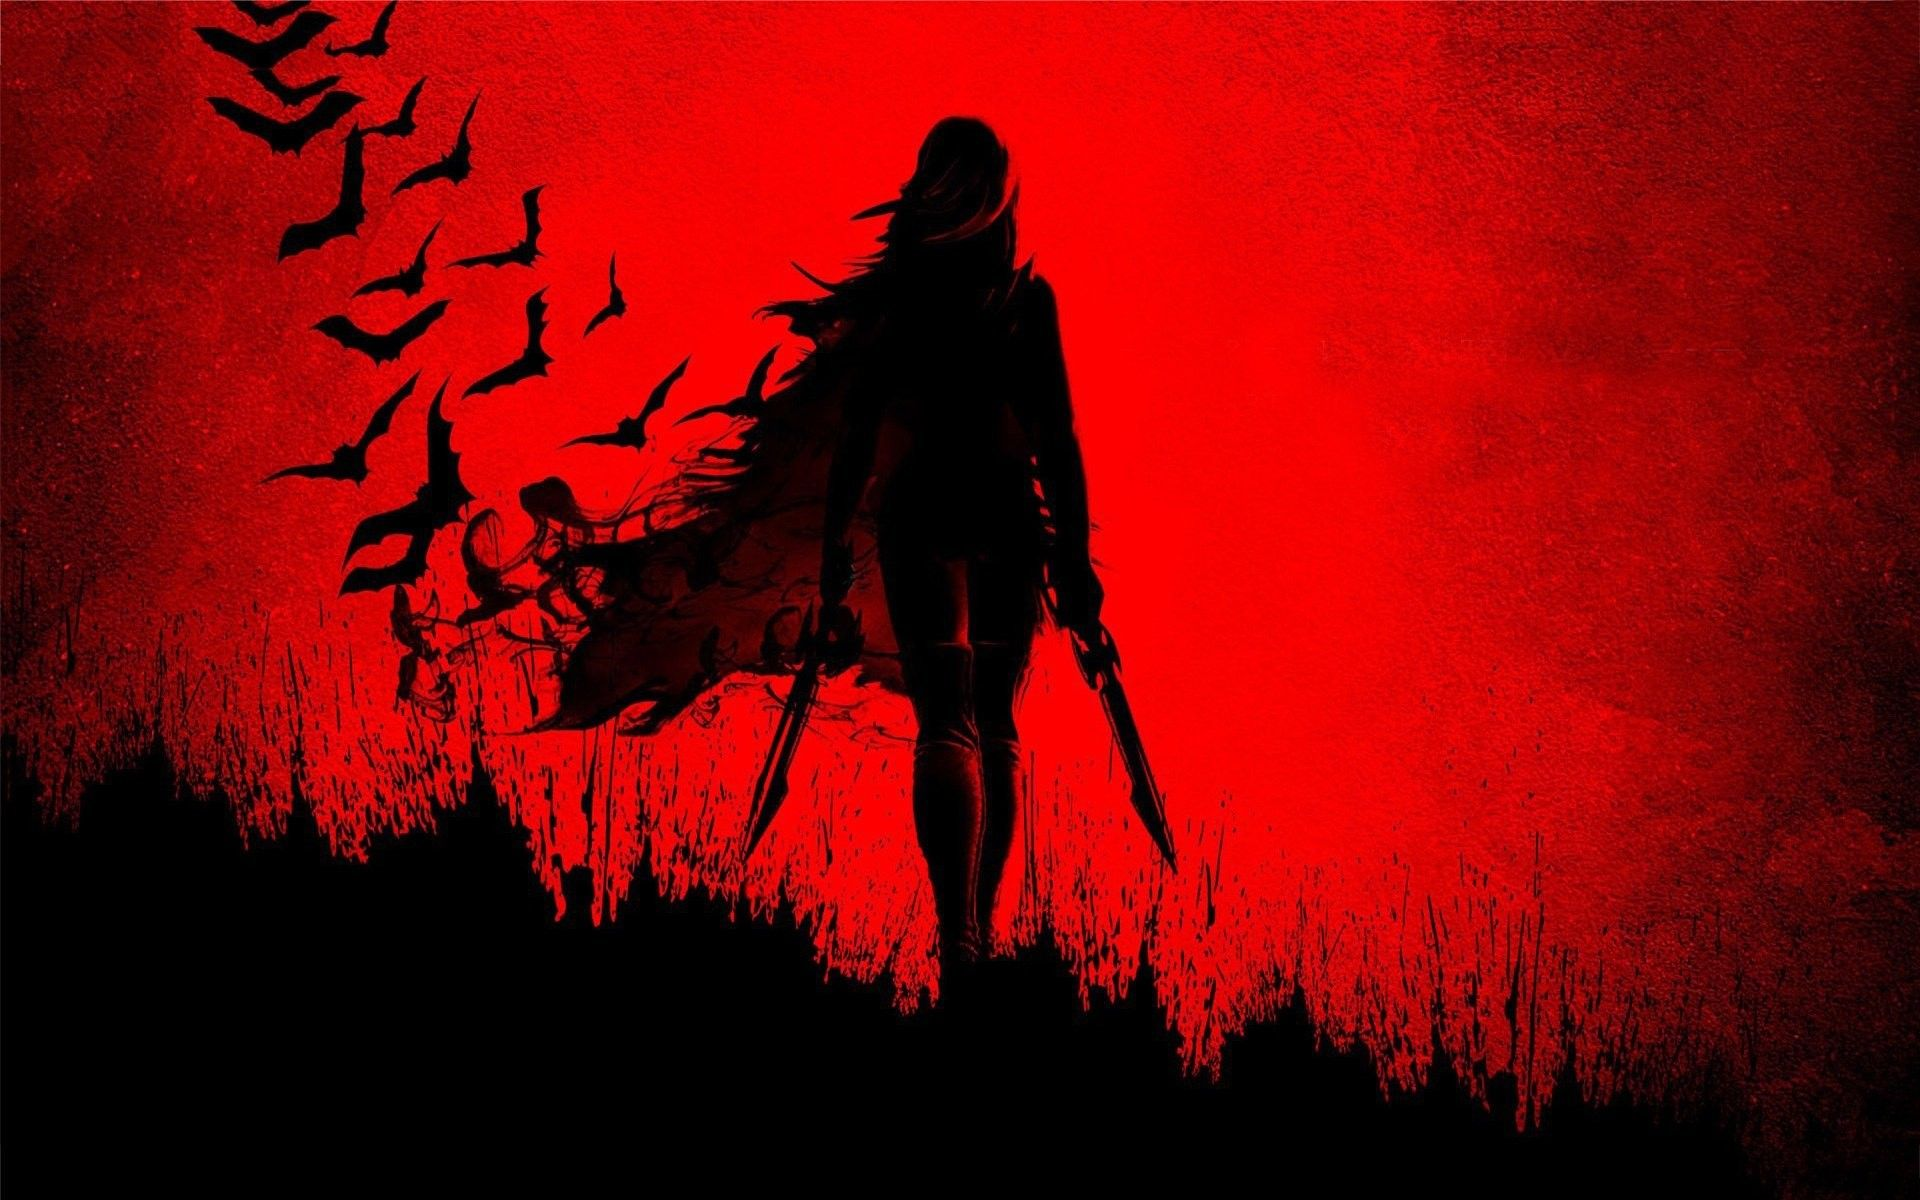 1920x1200 Blade Girl Shadow Wide Red Sword Anime Wallpaper 1920x1200 683479 Wallpaperup Girl Shadow Anime Wallpaper Throne Of Glass Series